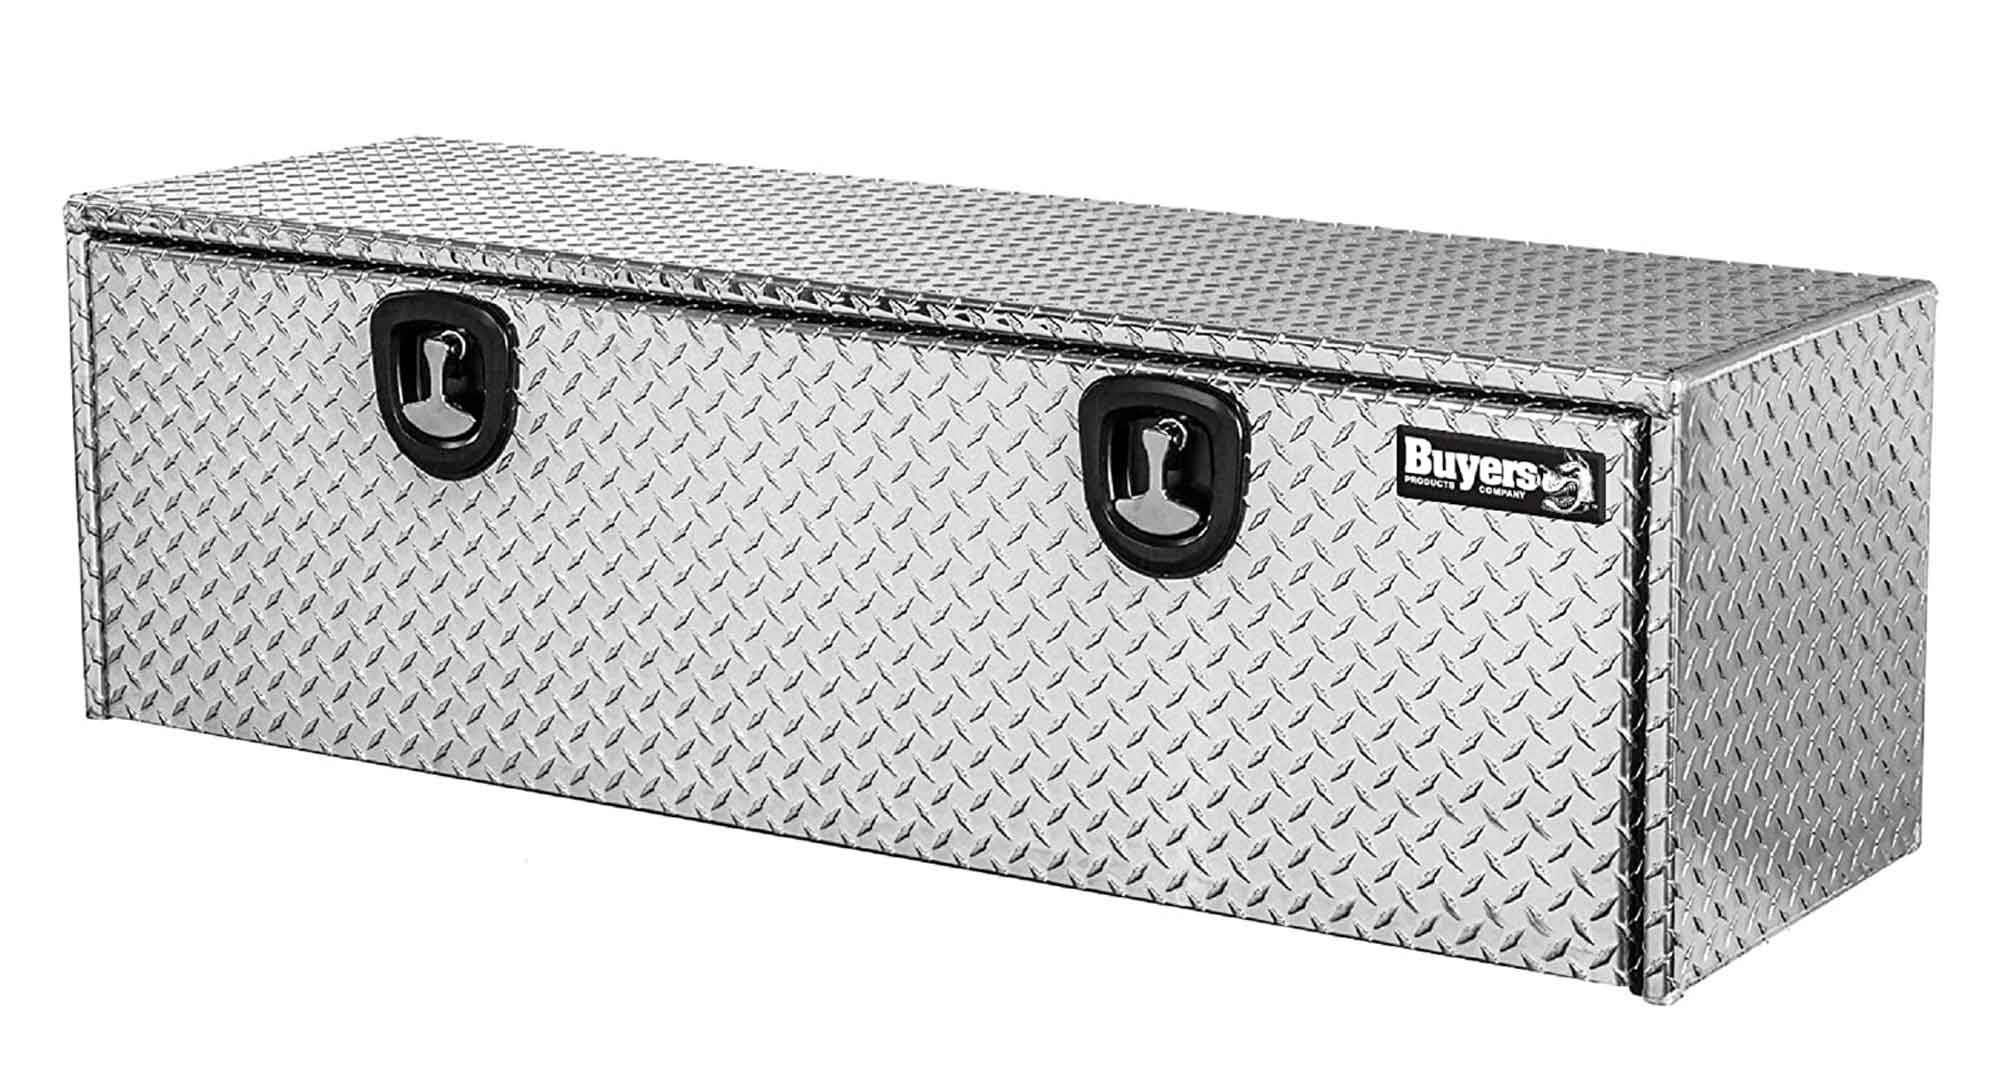 Buyers Products Diamond Tread Aluminum Underbody Truck Box w/ T-Handle Latch (18x18x60 Inch) , Silver